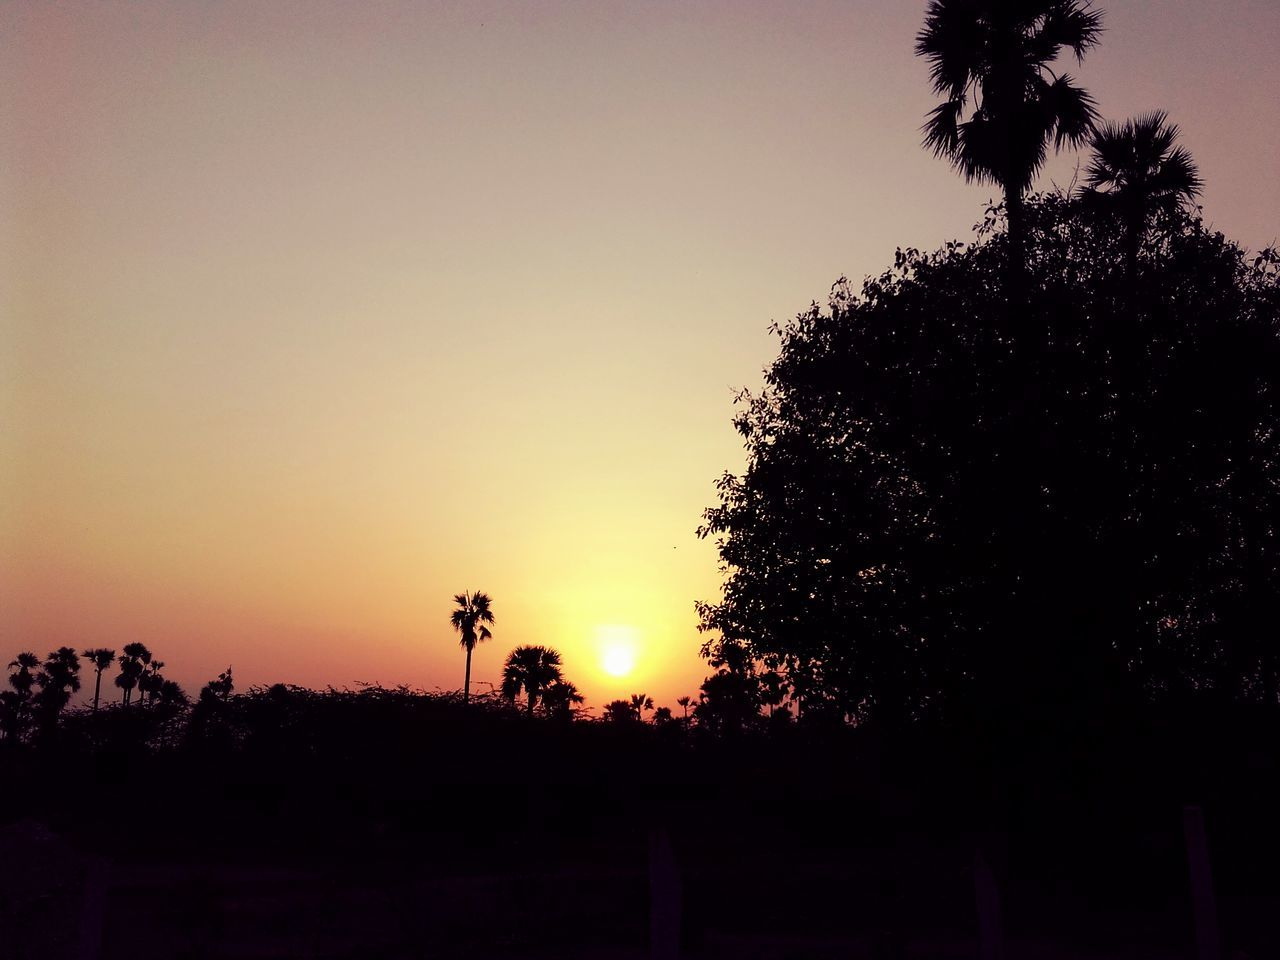 tree, sunset, silhouette, nature, beauty in nature, palm tree, growth, no people, outdoors, sky, tranquil scene, scenics, tranquility, clear sky, animal themes, day